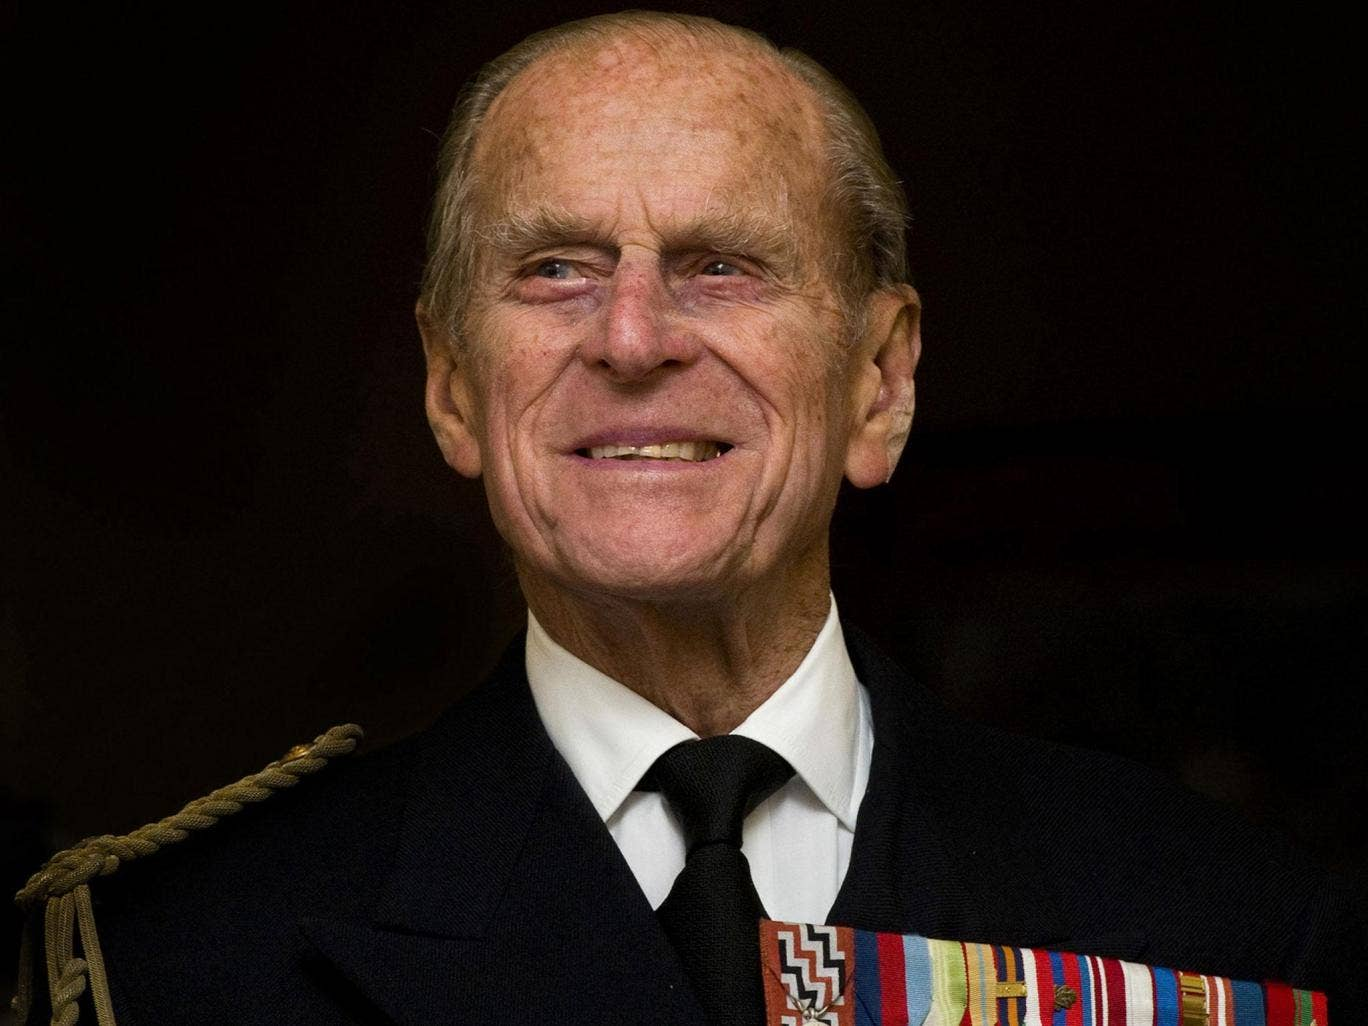 According to German tabloid Bild, eccentric characters like Prince Philip have a lot to offer the continent